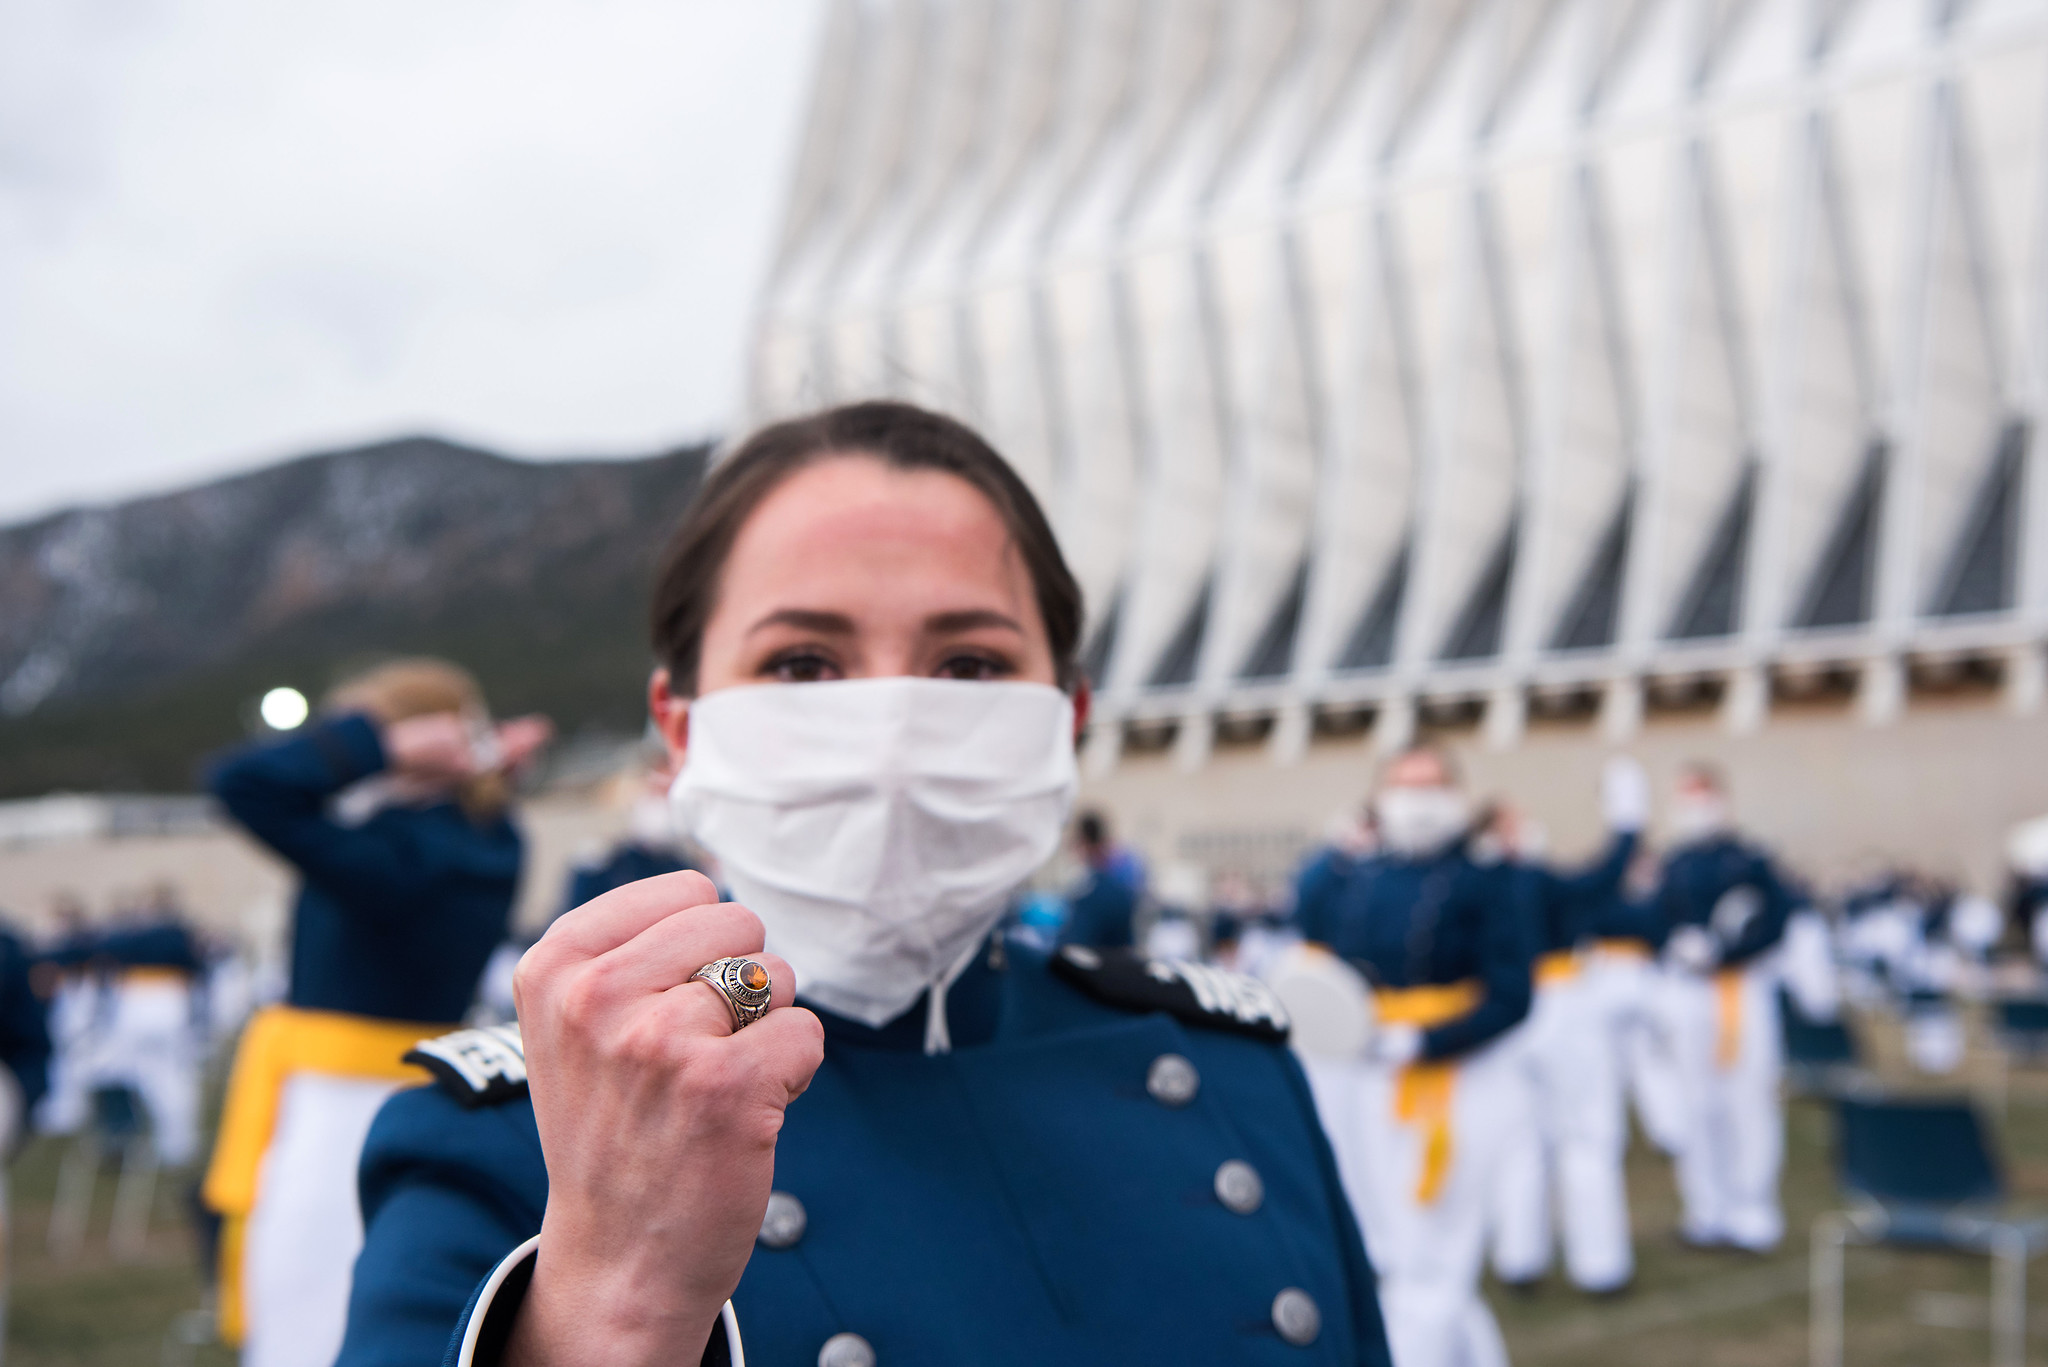 The U.S. Air Force Academy Class of 2020 graduation ceremony in Colorado Springs, Colo., was held April 18, 2020. Nine-hundred-sixty-seven cadets crossed the stage to become the Air Force/Space Force's newest second lieutenants. (Trevor Cokley/Air Force)